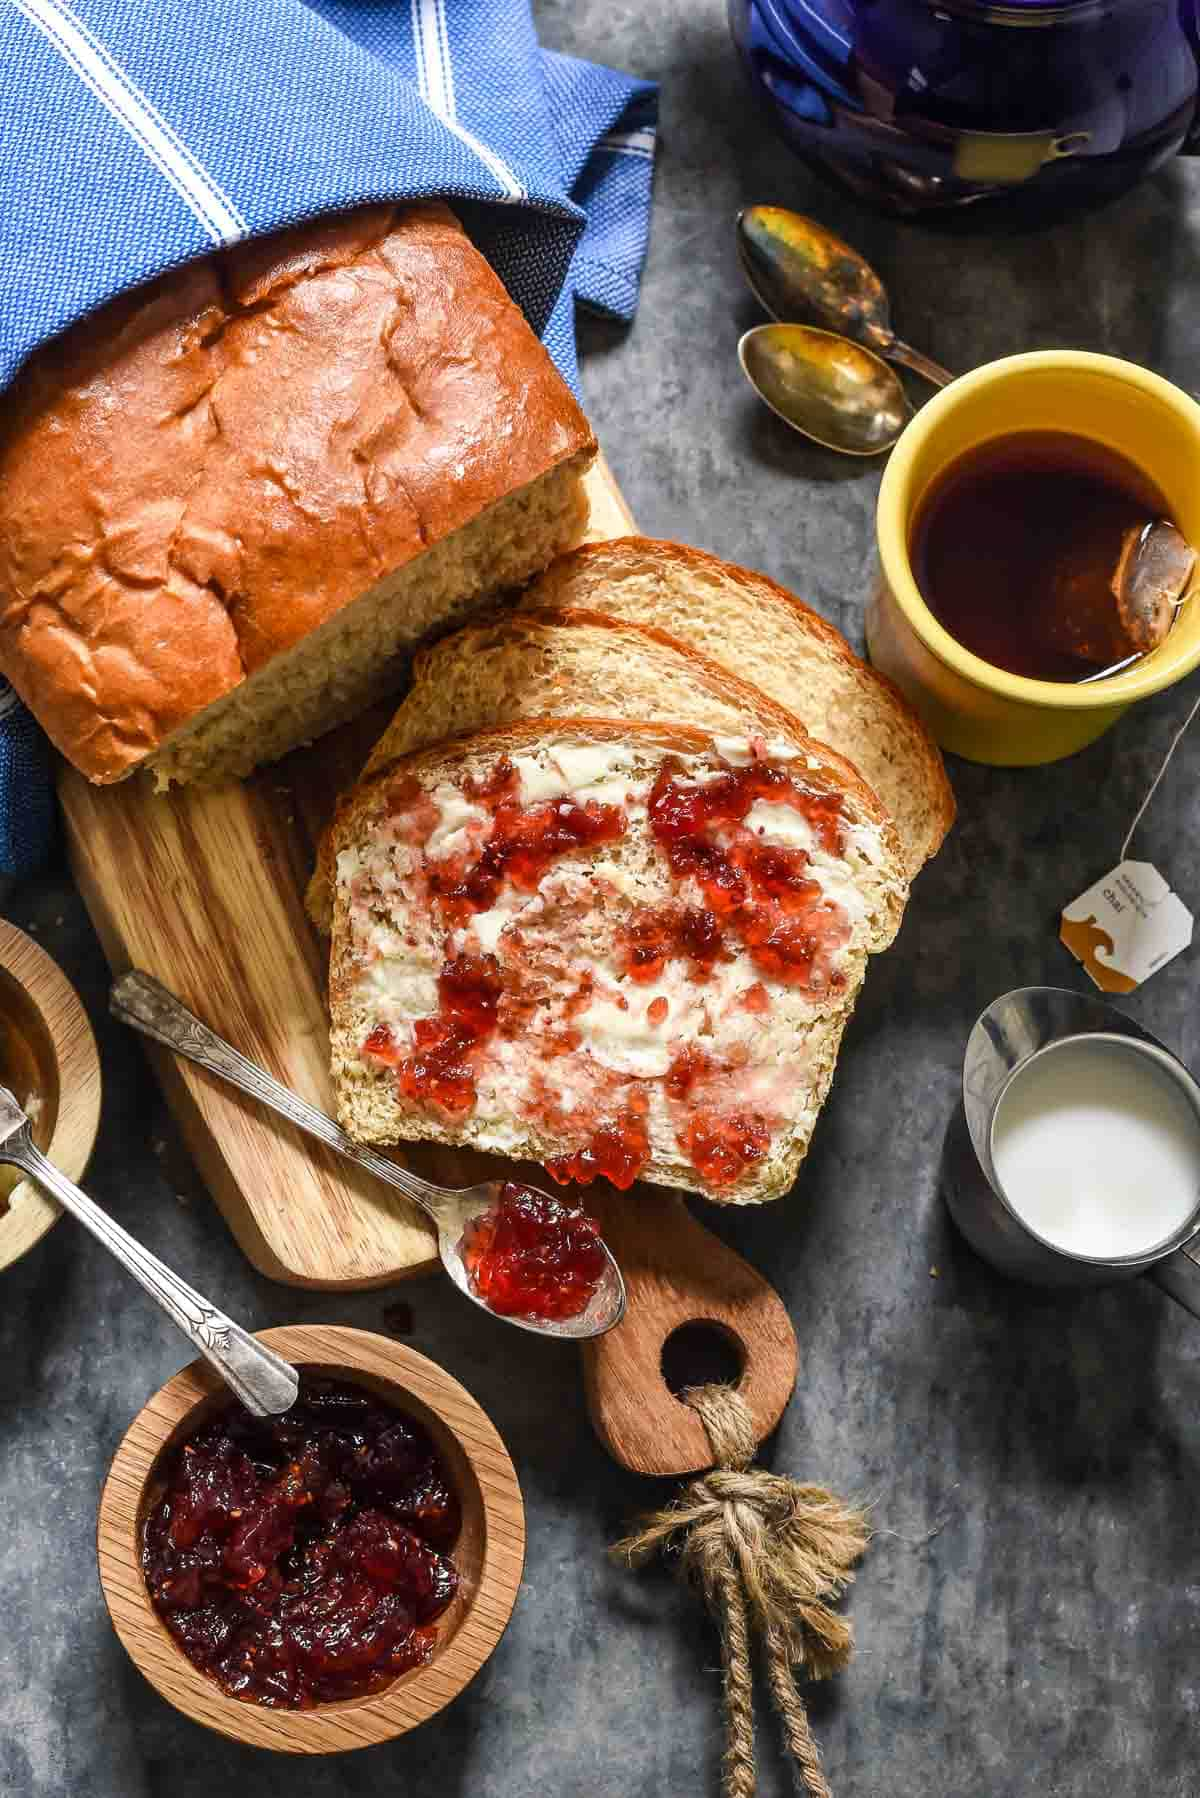 There's nothing better than homemade bread, and this Amish White Bread is our family favorite! Easy to make and perfect for sandwiches or jam!